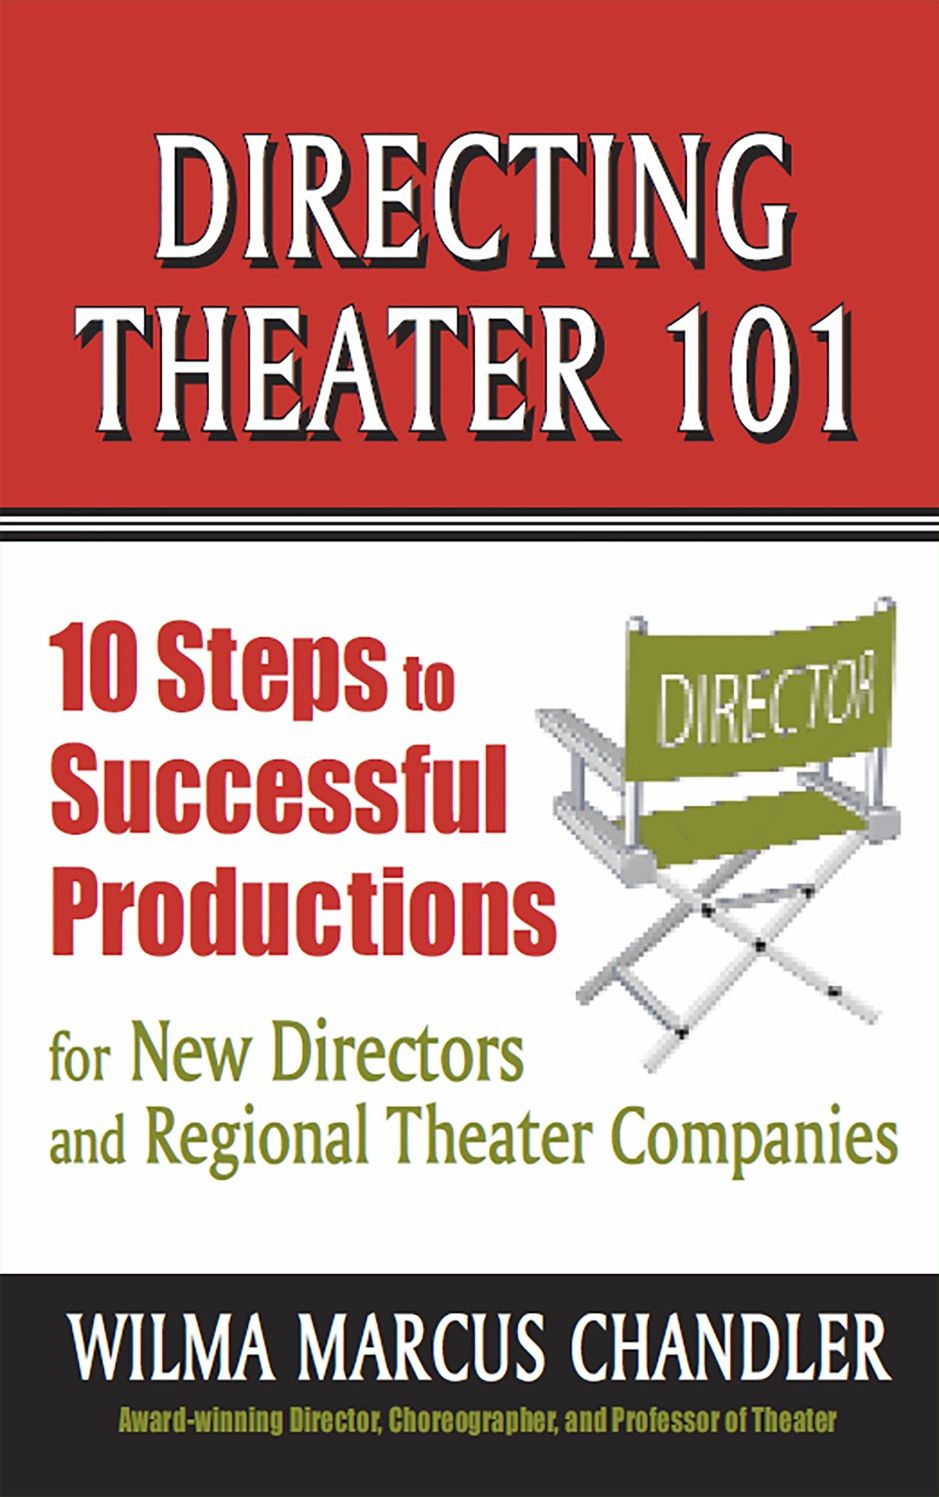 A Zdirecting Theater 101 10 Steps To Successful Productions For New Directors And Sponsored Directing Theatre Theatre Company Logo Design Branding Simple